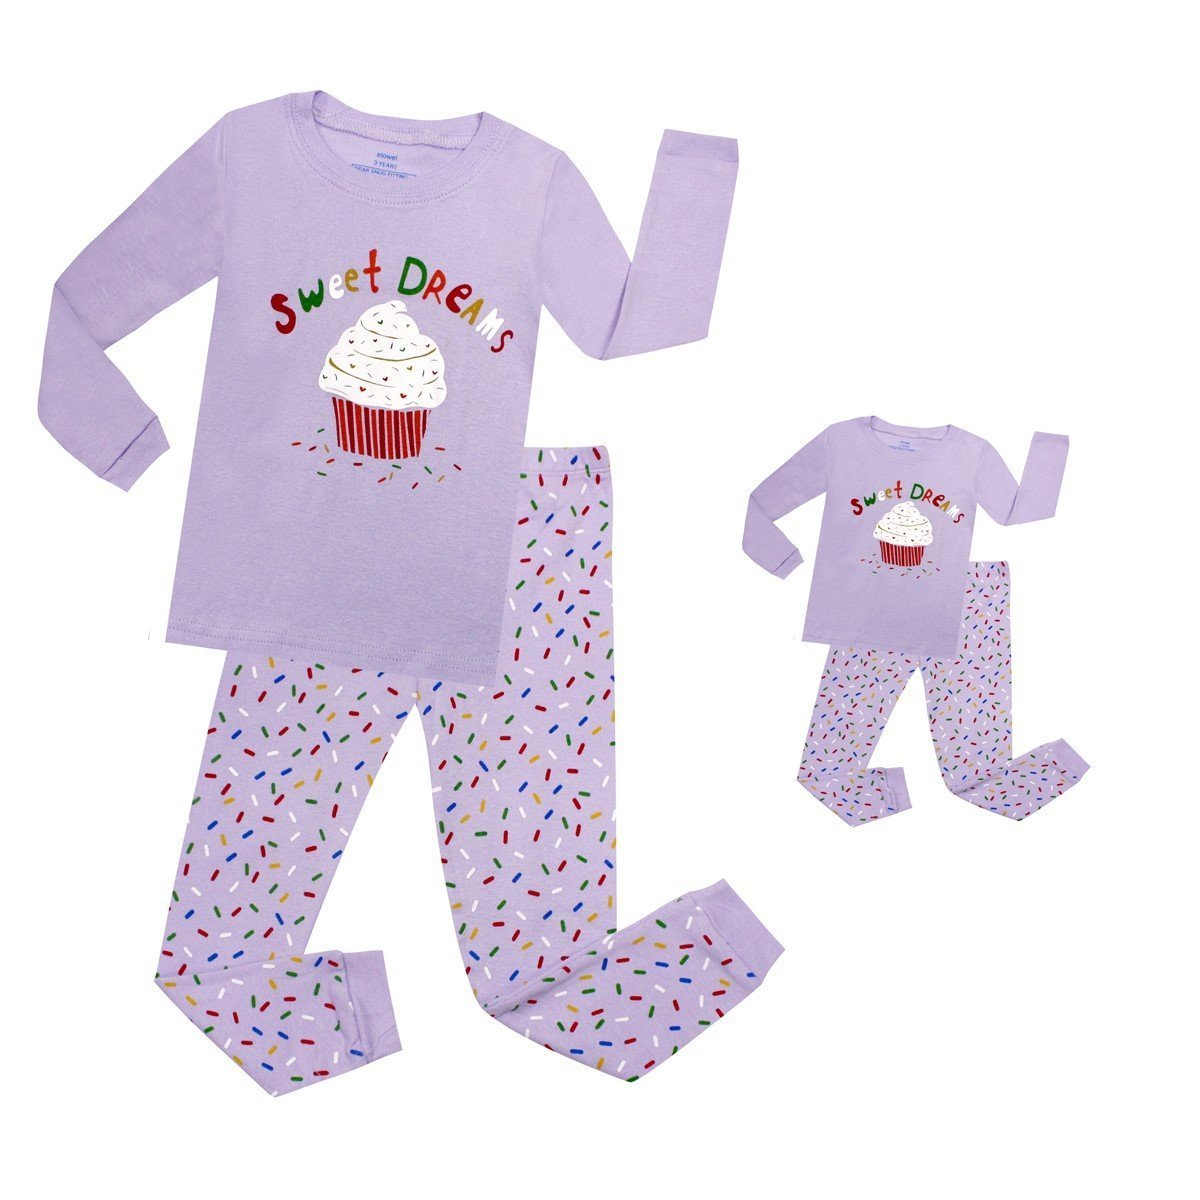 Elowel Cupcake Matching Girl & Doll 2 Piece Pajama Set 100% Cotton (Size 2-12 Years) Elowel Pajamas LFT1704B